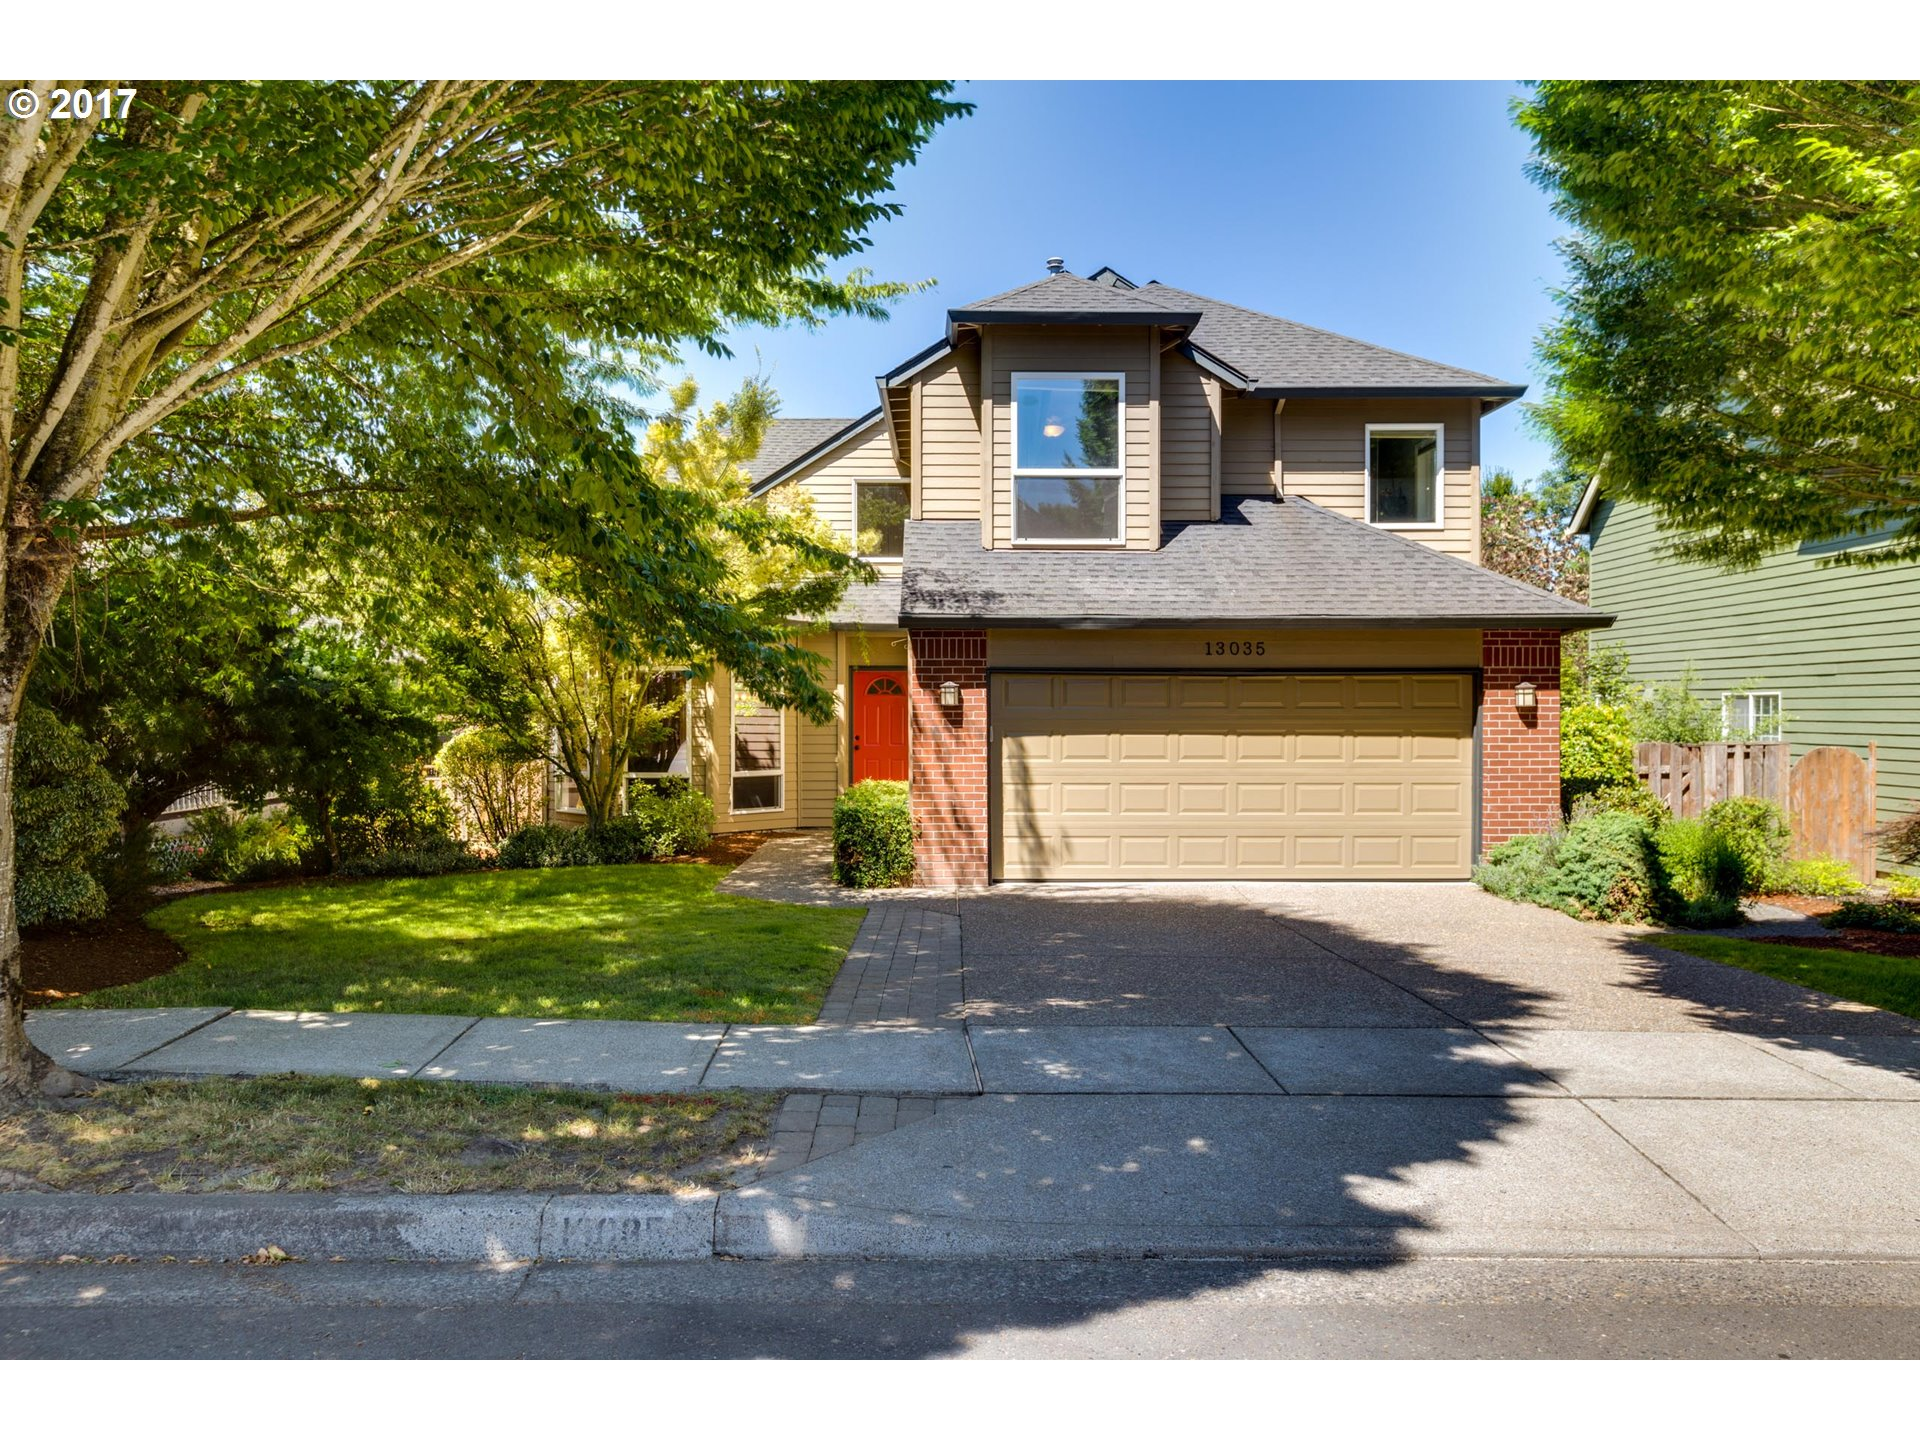 Open Houses 9/23-9/24, 12pm-2pm. Nestled in a wonderful Beaverton neighborhood, thoughtfully updated & well maintained, this home is ready to go! Hickory hardwoods, tile floors & wall to wall carpeting-the space lives large! Generous windows, light & bright w/ master suite + three bedrooms. Open concept kitchen w/nearby family room flows right out to the one of a kind covered deck & fire-pit on the patio! Great schools, great location!!